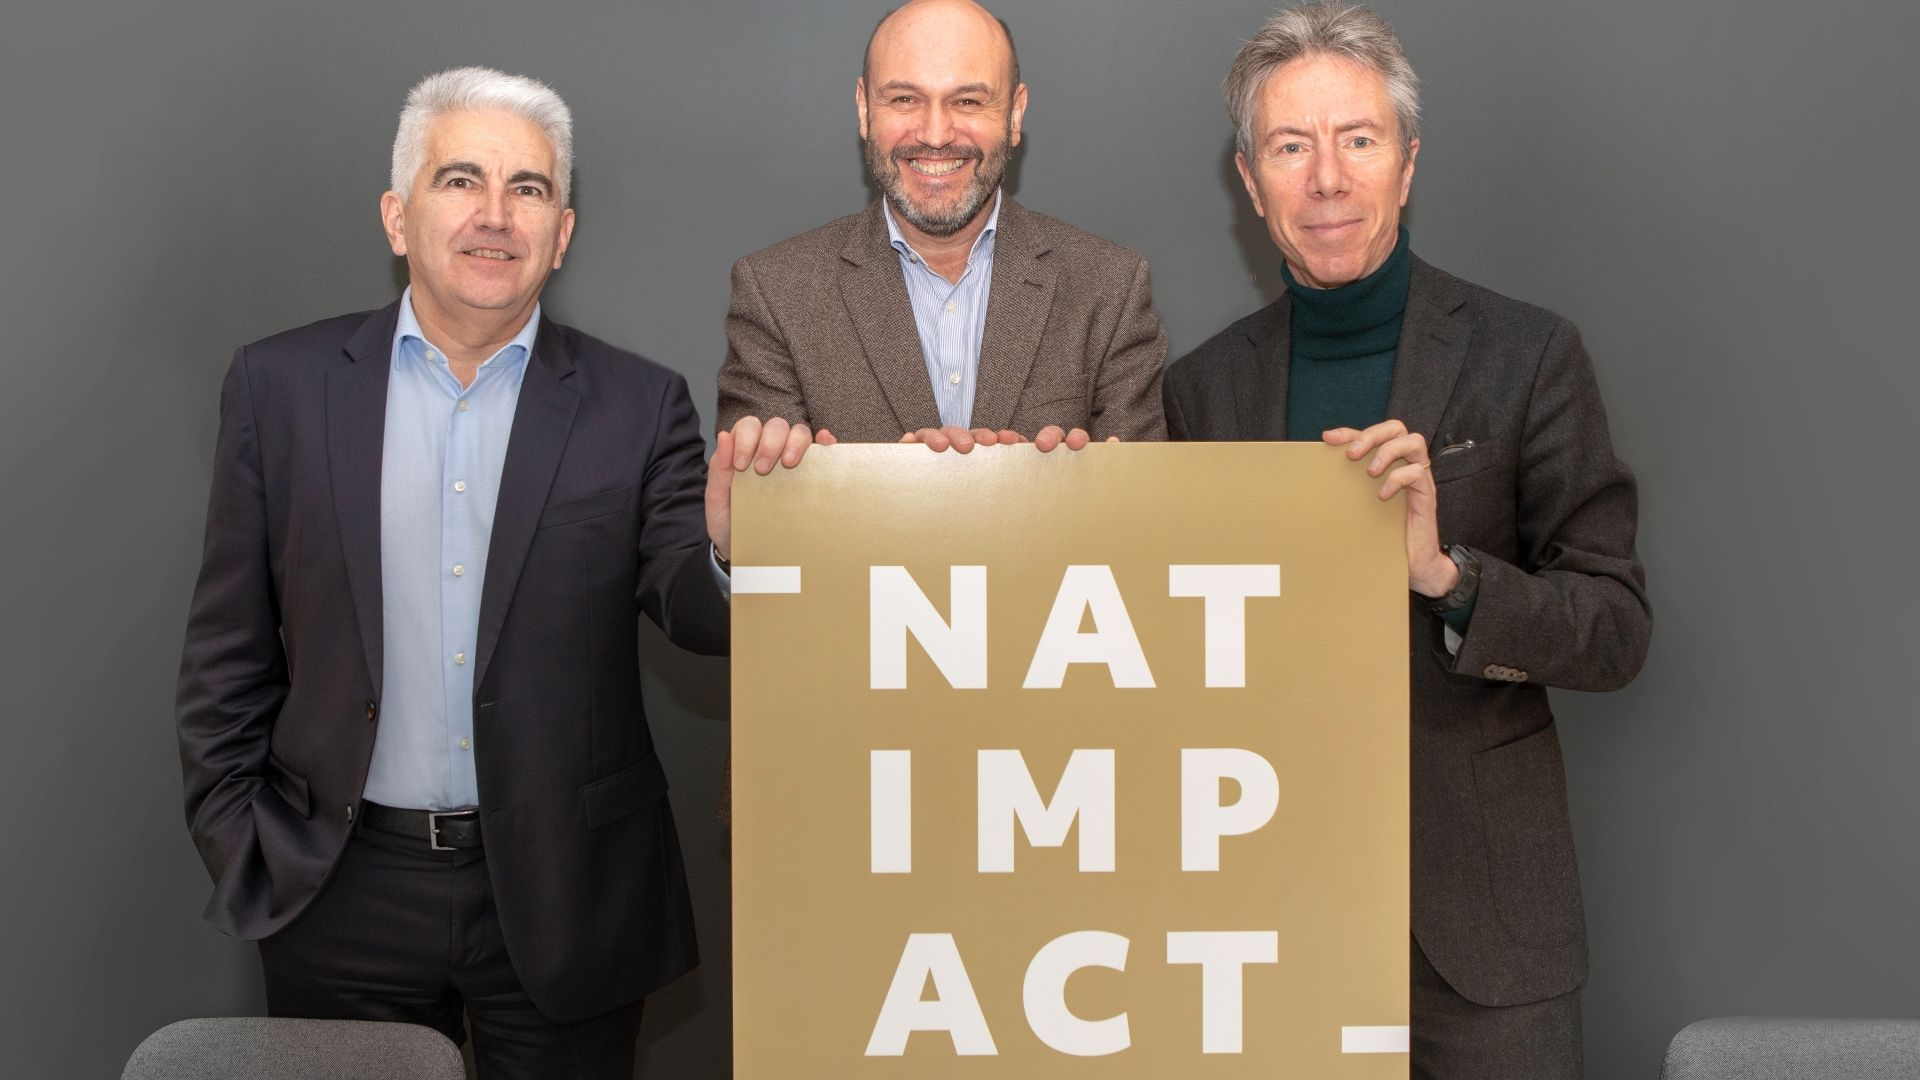 Groupe Natimpact has acquired Bovetti Chocolats